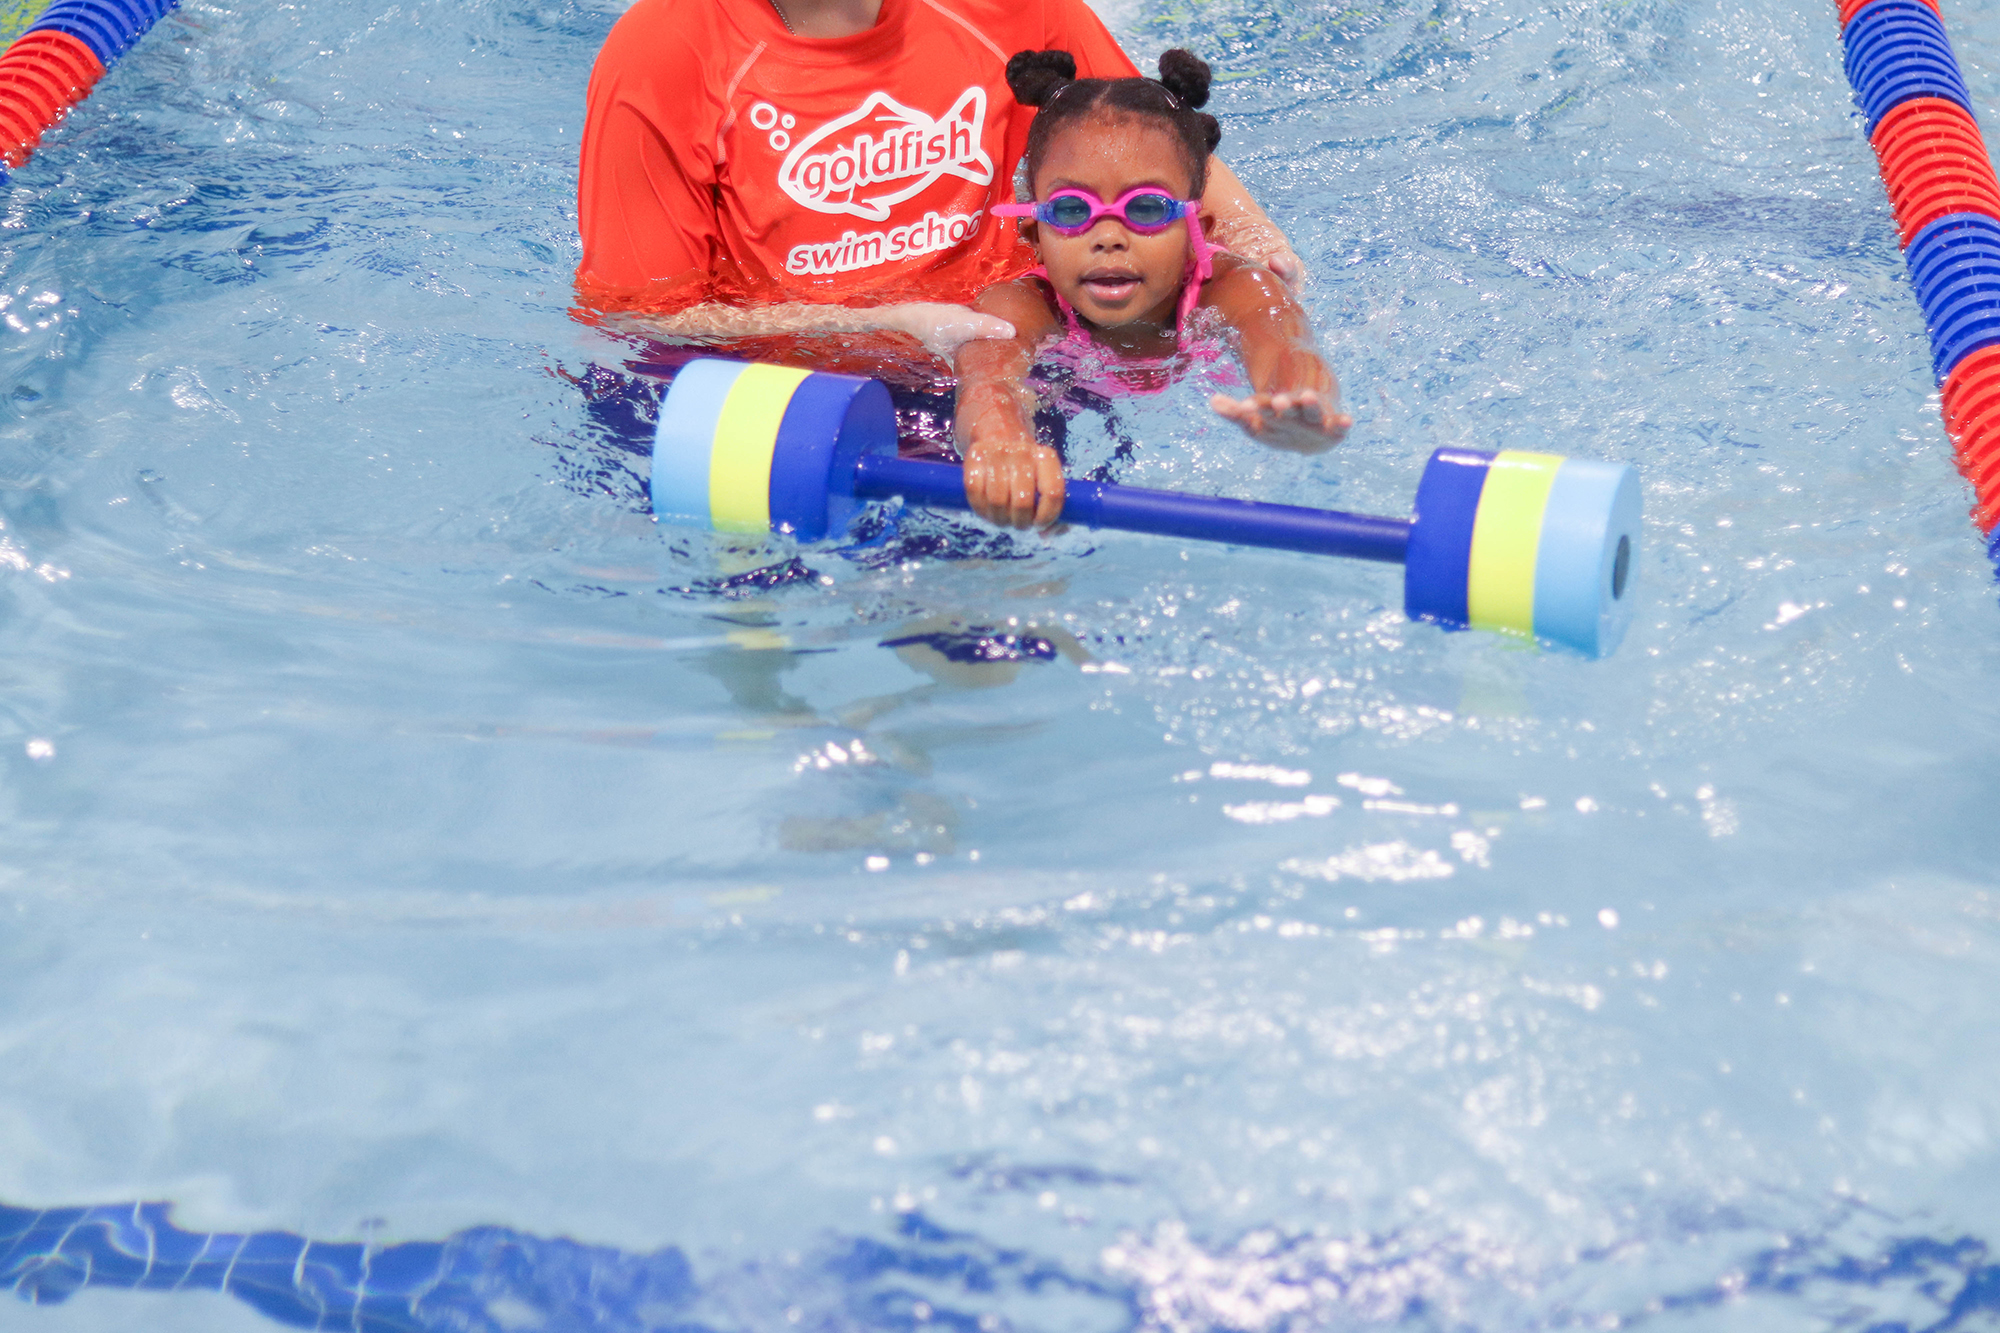 6 Swimming Skills Your Kid Will Learn at Goldfish Swim School | Bianca Dottin